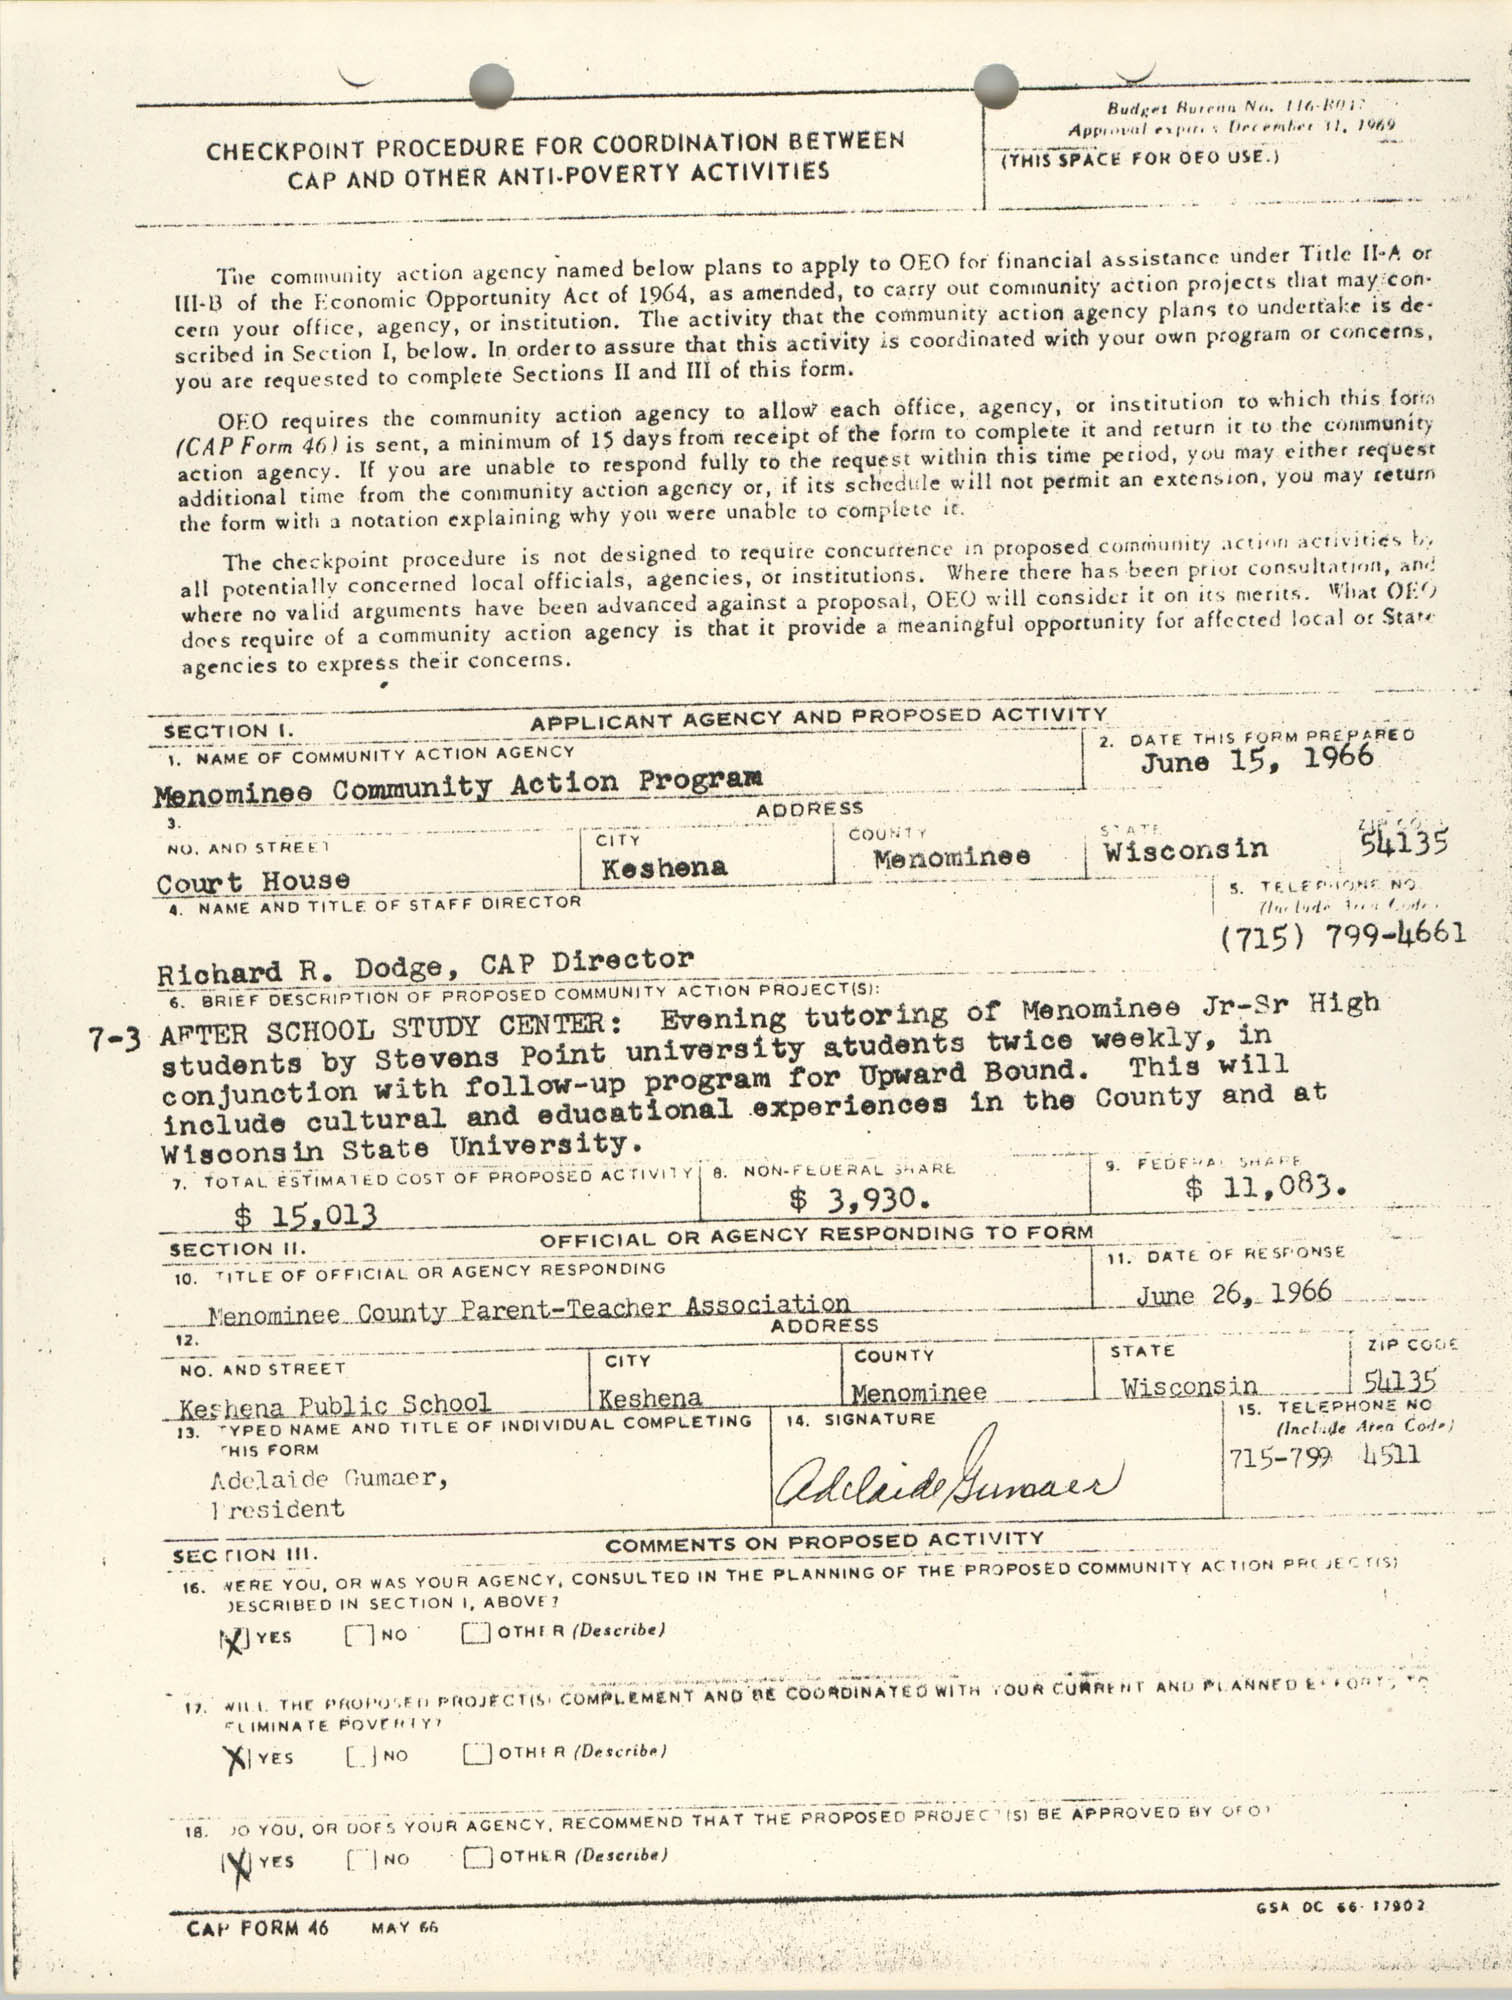 Checkpoint Procedure for Coordination, June 15, 1966, Page 7